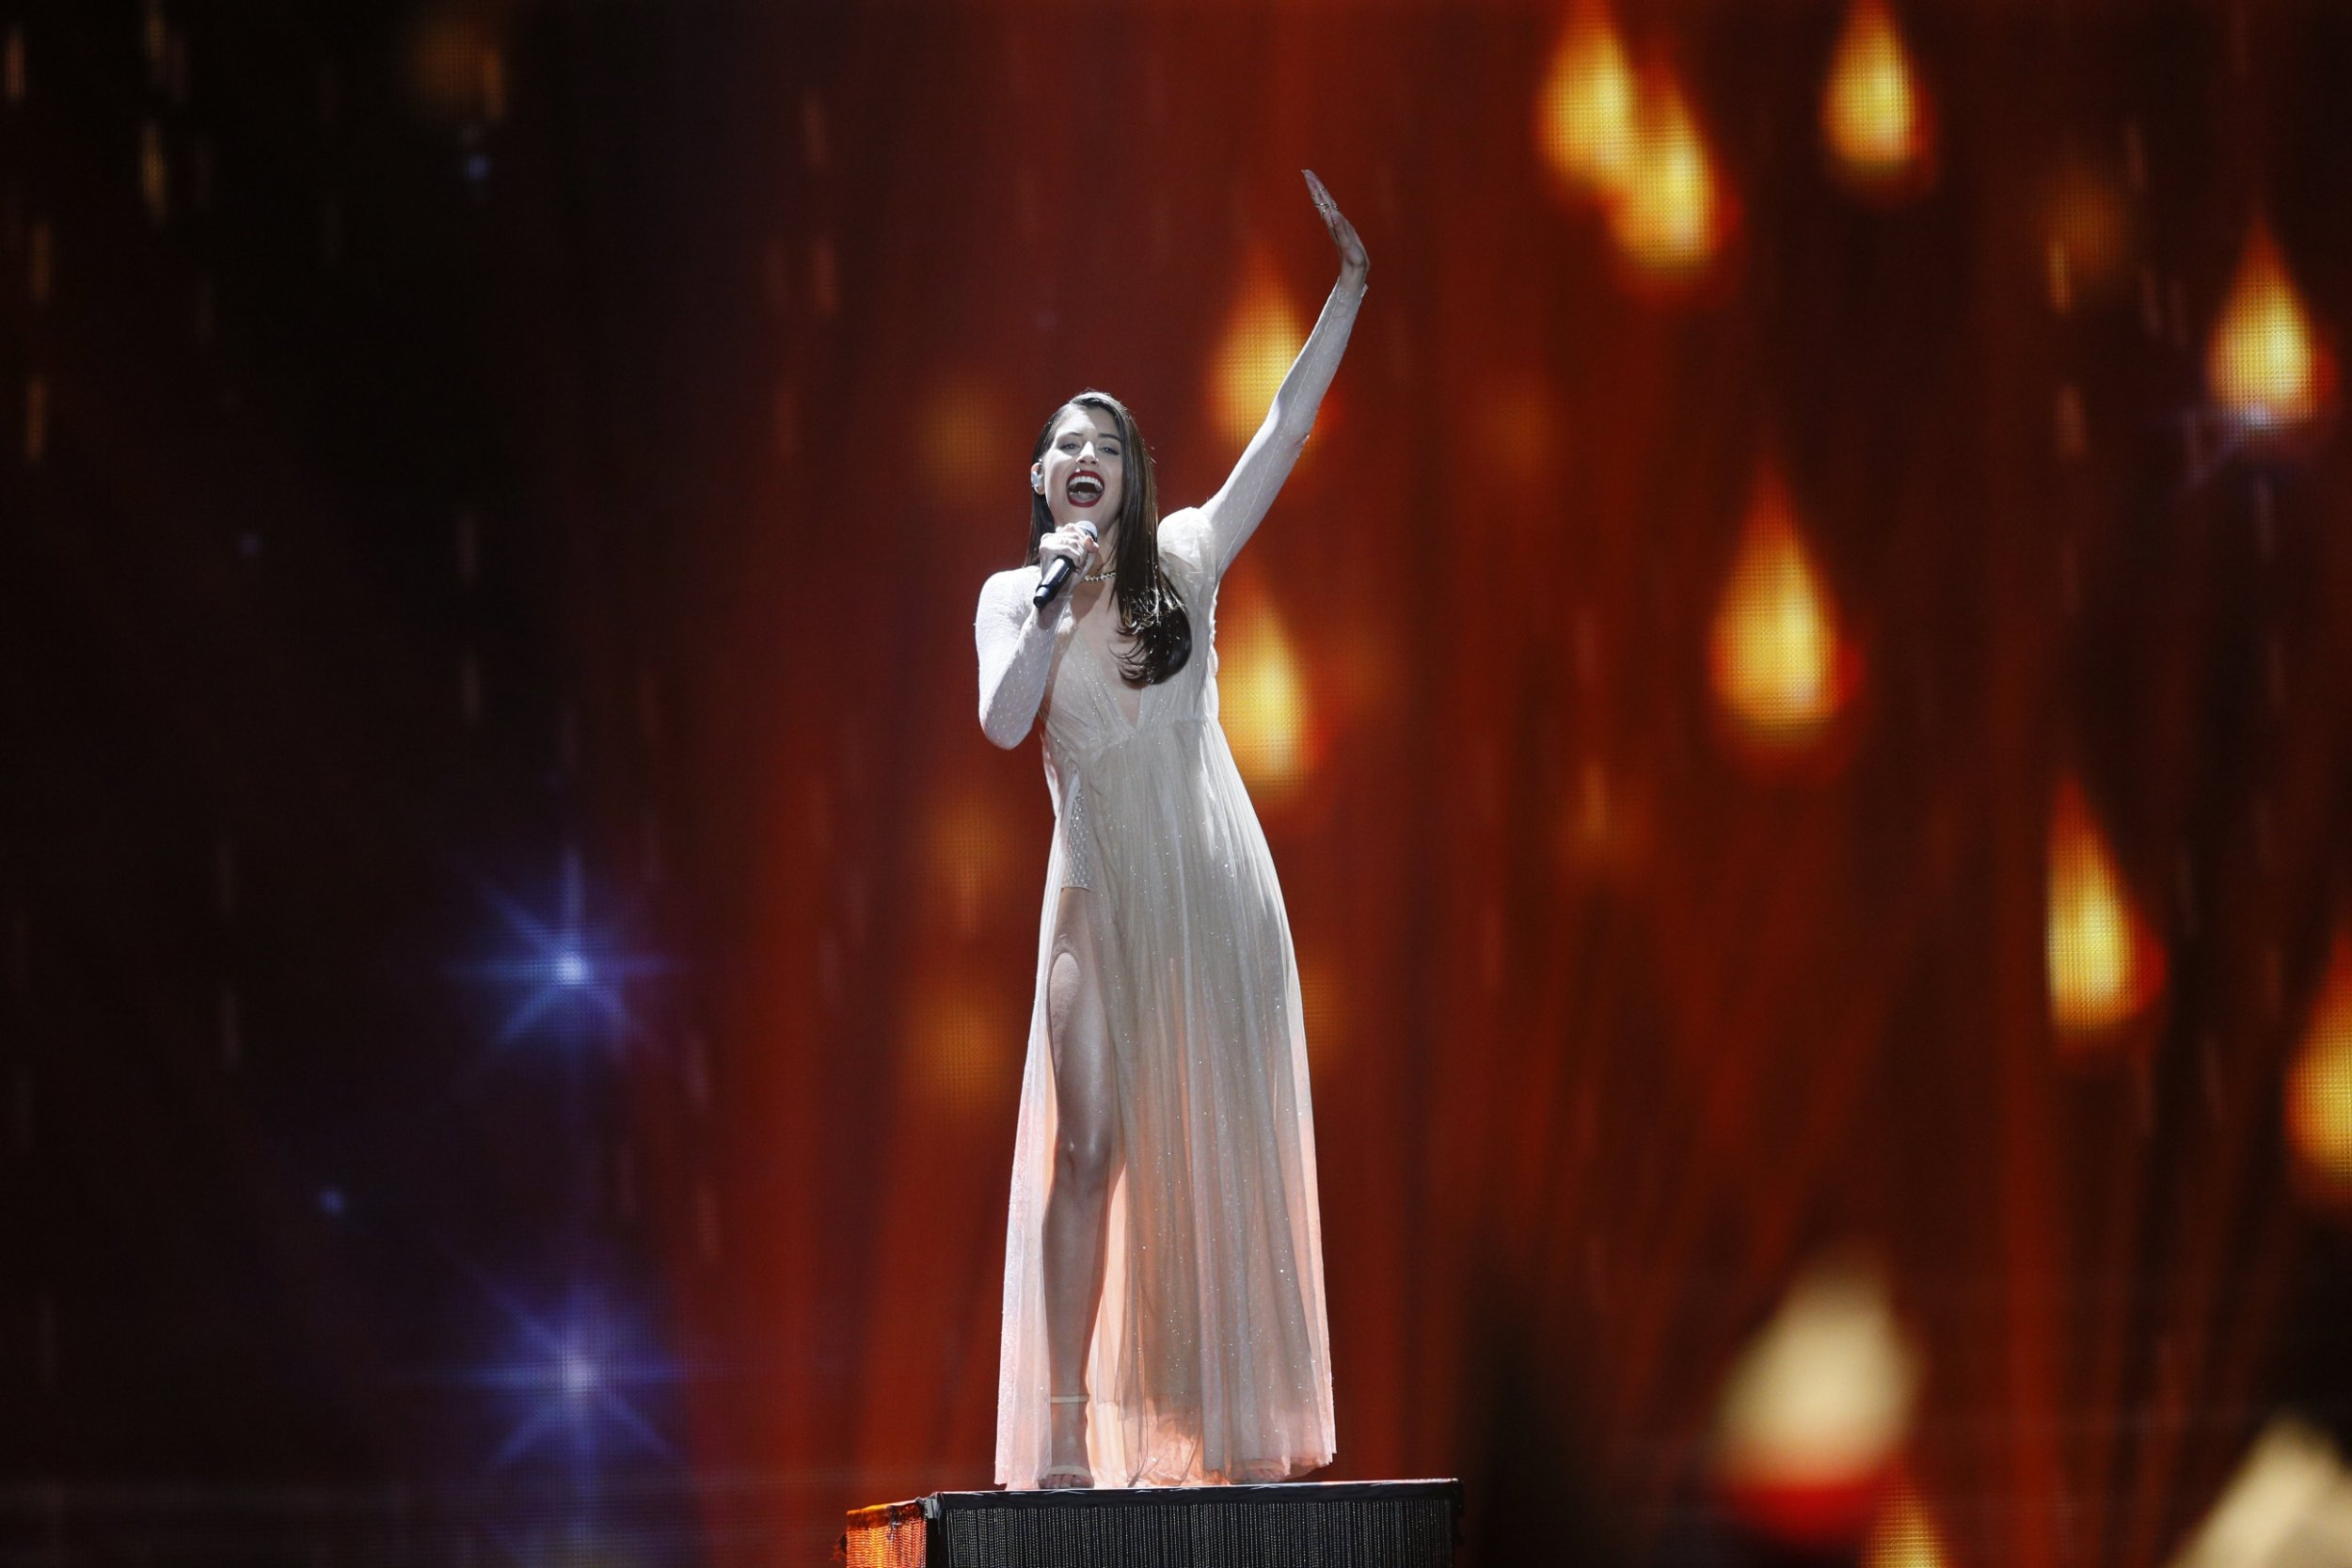 epa05953690 Demy from Greece performs with the song 'This is Love' during the First Semi Final of the 62nd annual Eurovision Song Contest (ESC) at the International Exhibition Centre in Kiev, Ukraine, 09 May 2017. The ESC 2017 Grand Final is held on 13 May.  EPA/SERGEY DOLZHENKO